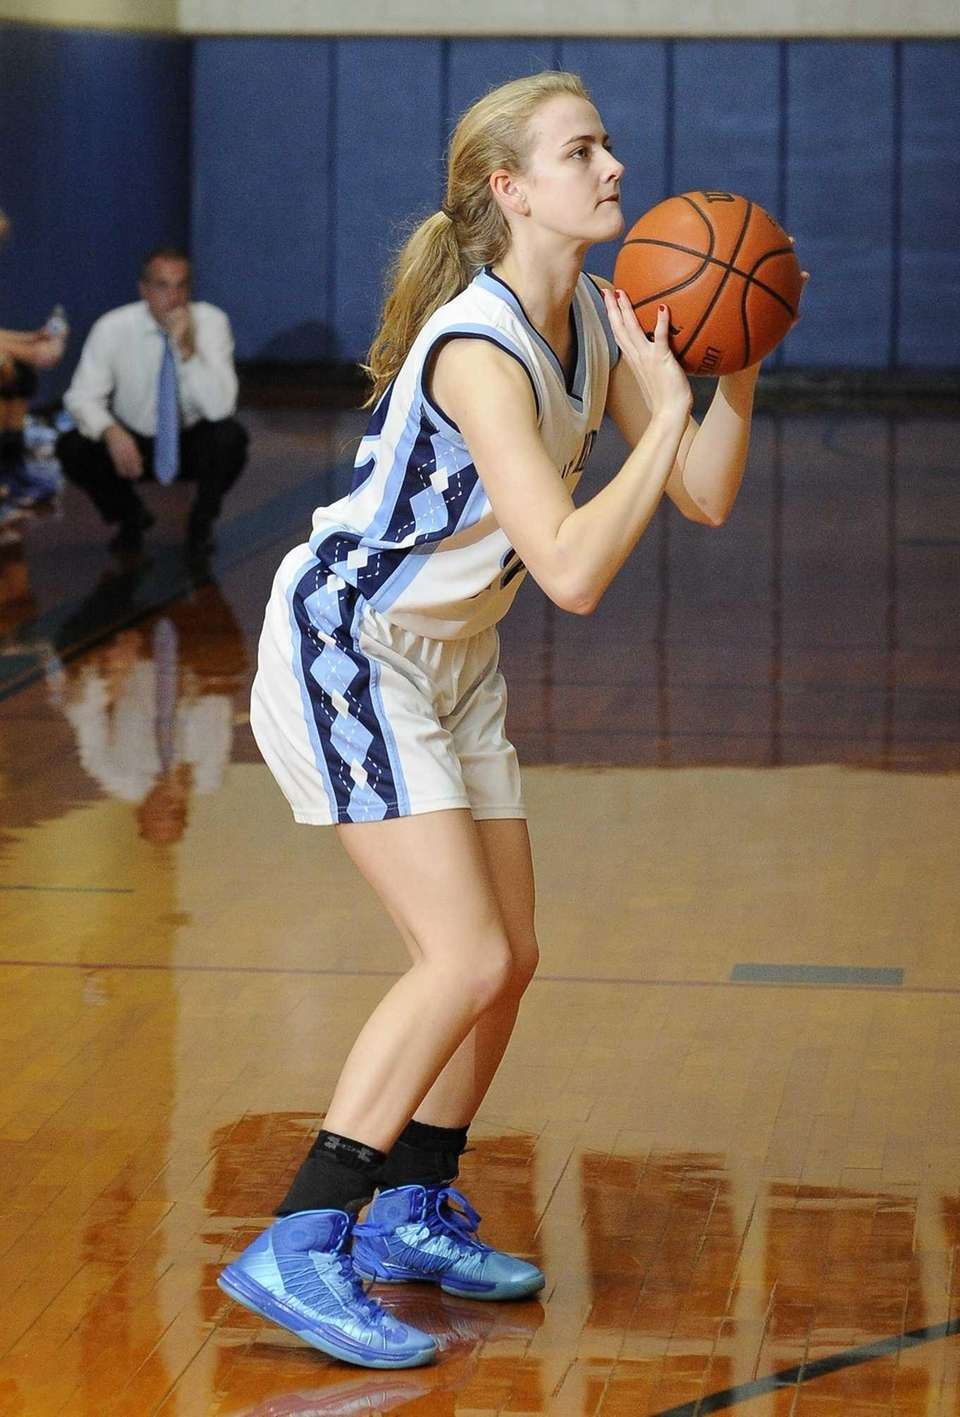 Our Lady of Mercy's Marilyn Lehmuller shoots a